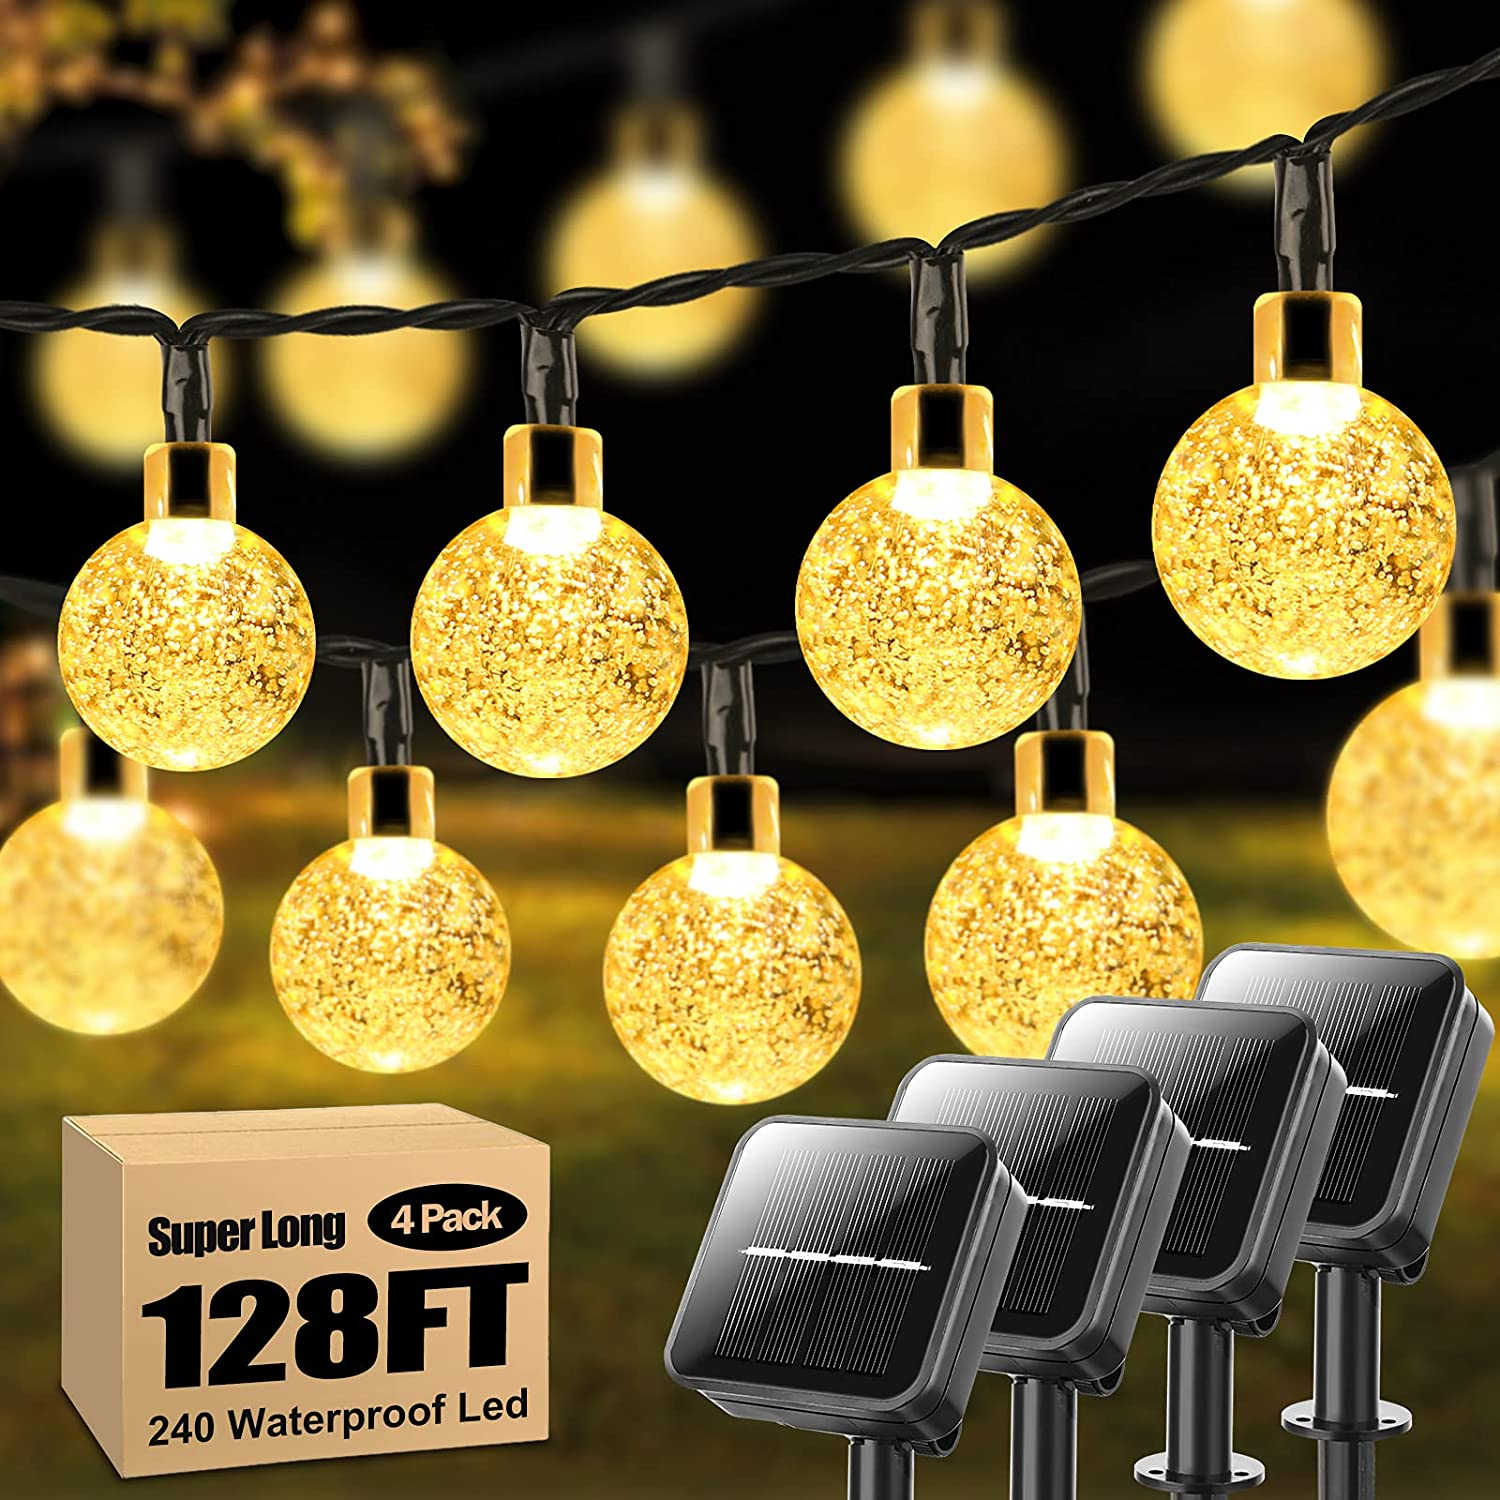 4-Pack 240 LED 128FT Solar String Lights Outdoor Crystal Globe Decorative Light Strings with 8 Modes, Waterproof Solar Powered Patio String Lights for Garden Tree Gazebo Patio Backyard, Warm White